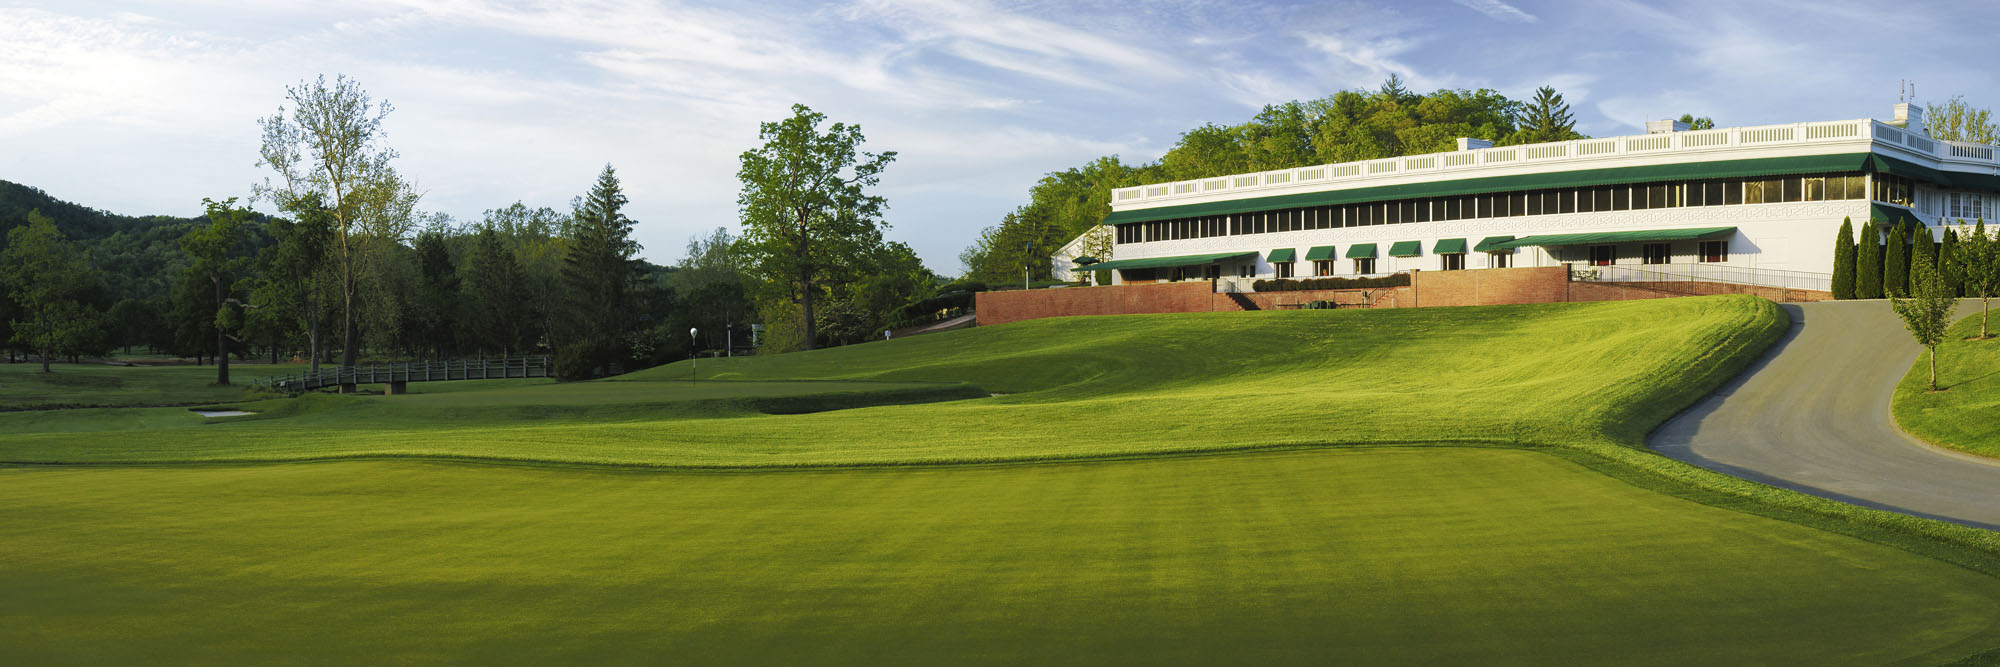 Golf Course Image - The Greenbrier White Course Clubhouse